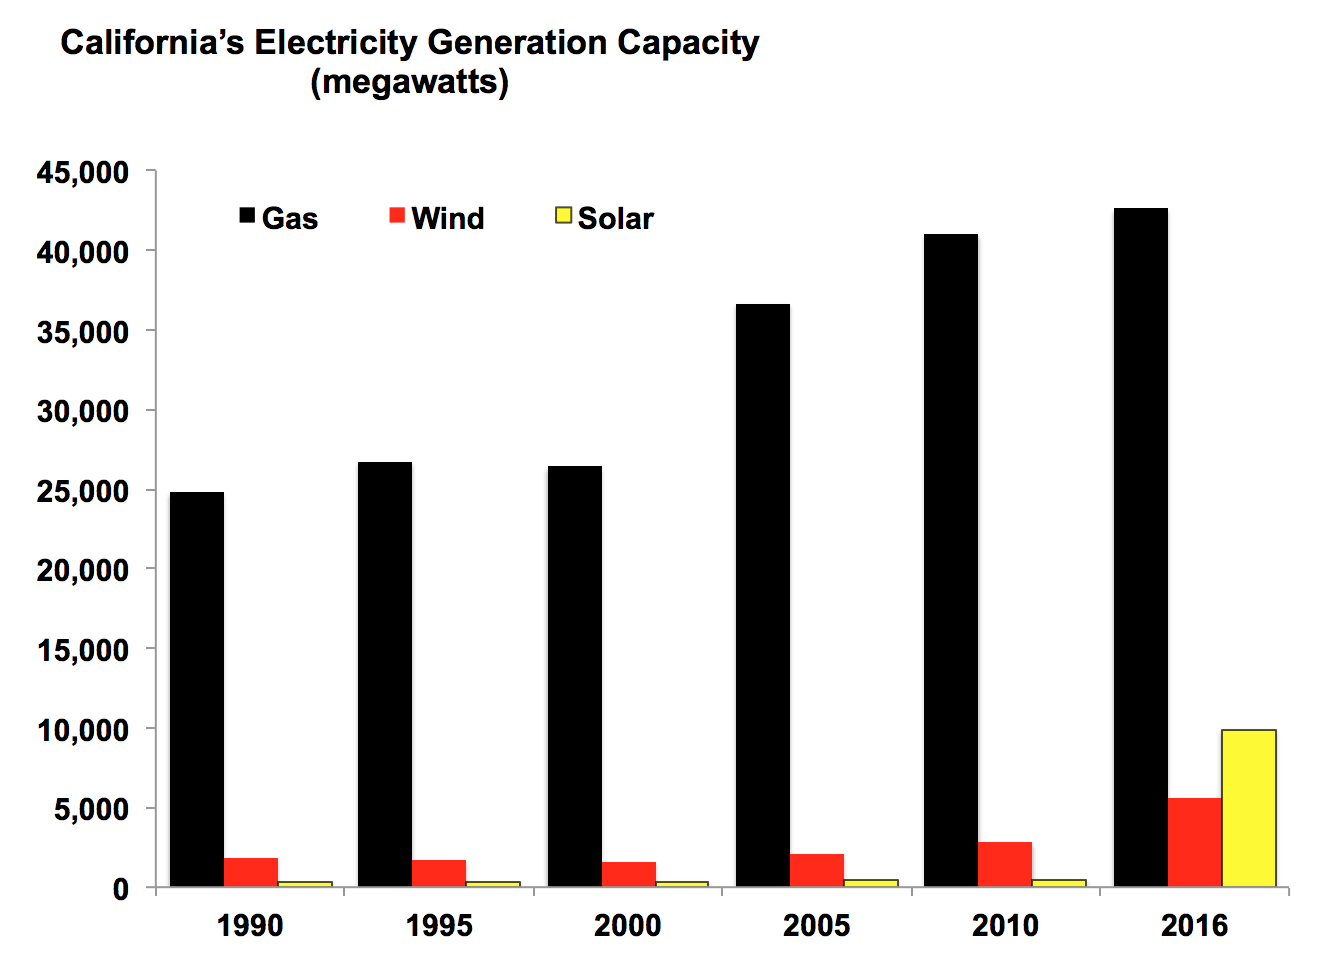 California's Electricity Generation Capacity